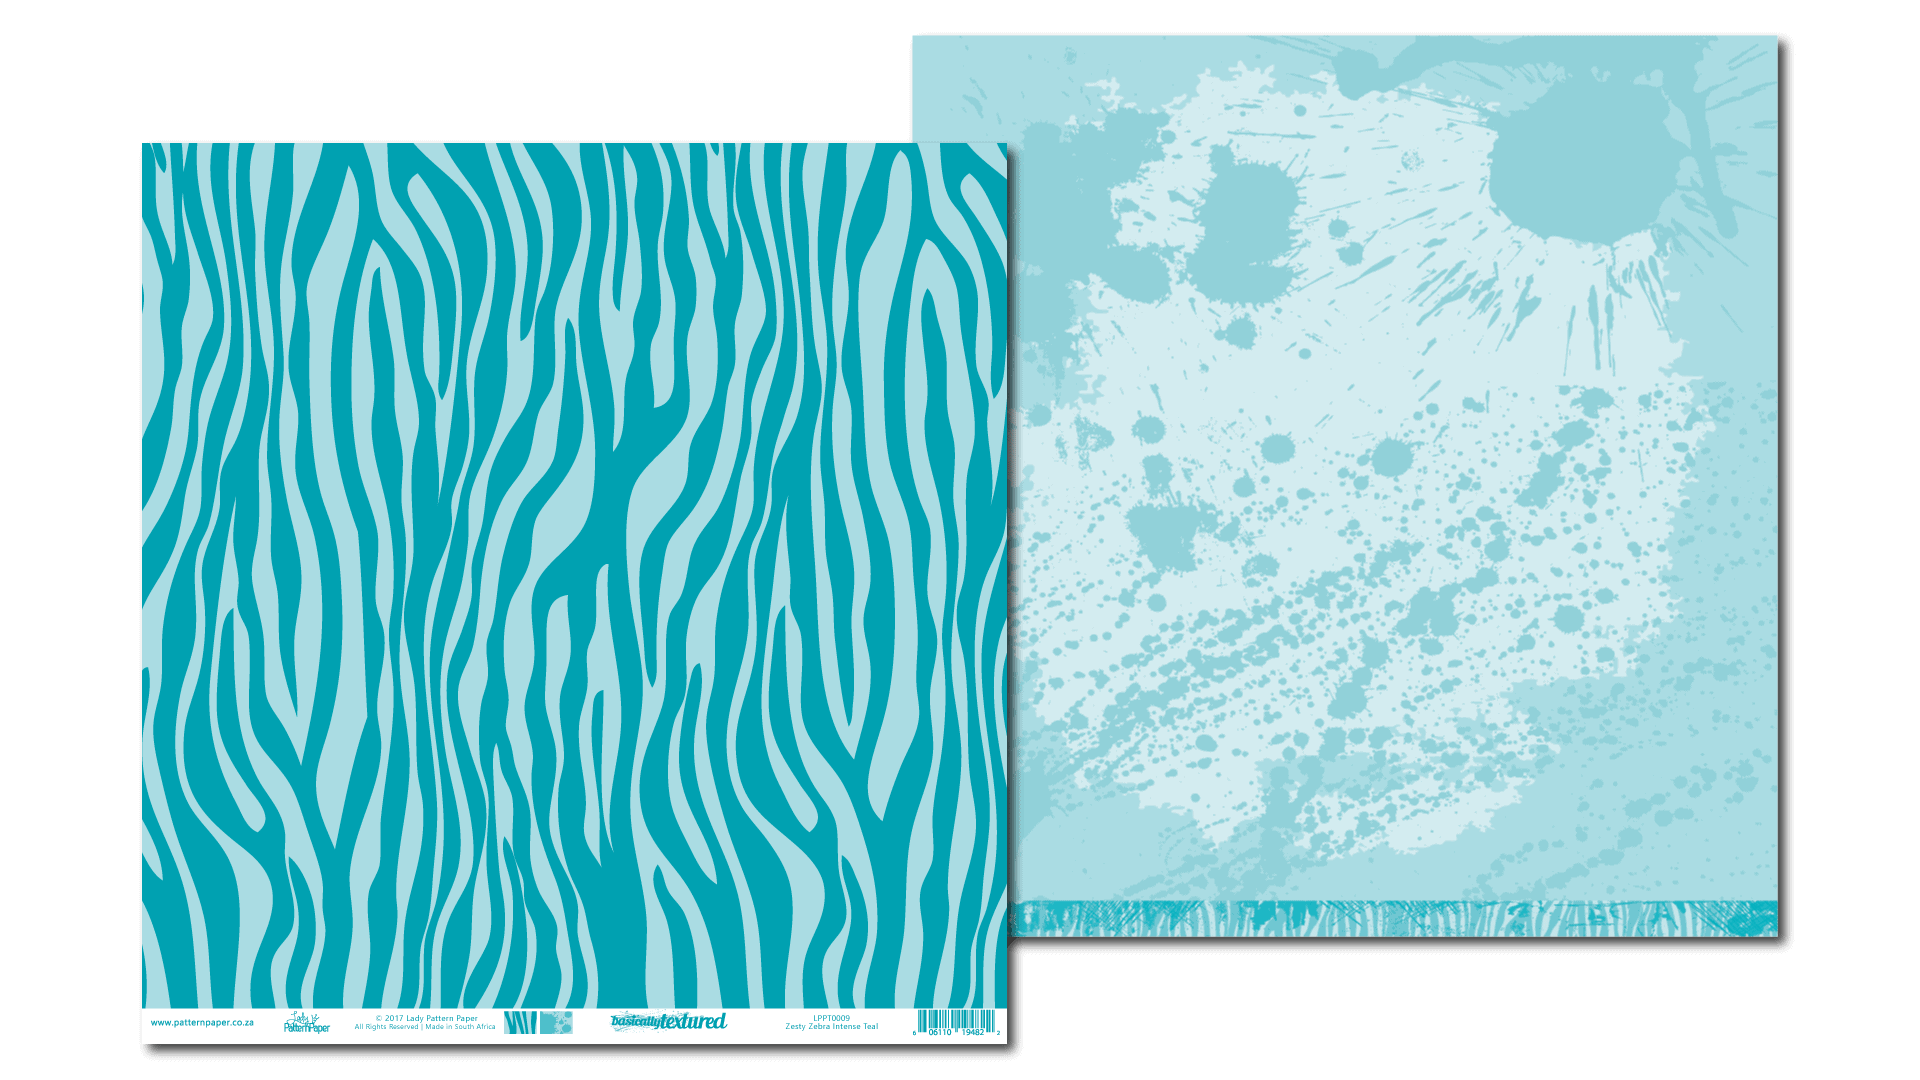 LPPT0009 - Basically Textured - Zesty Zebra - Intense Teal